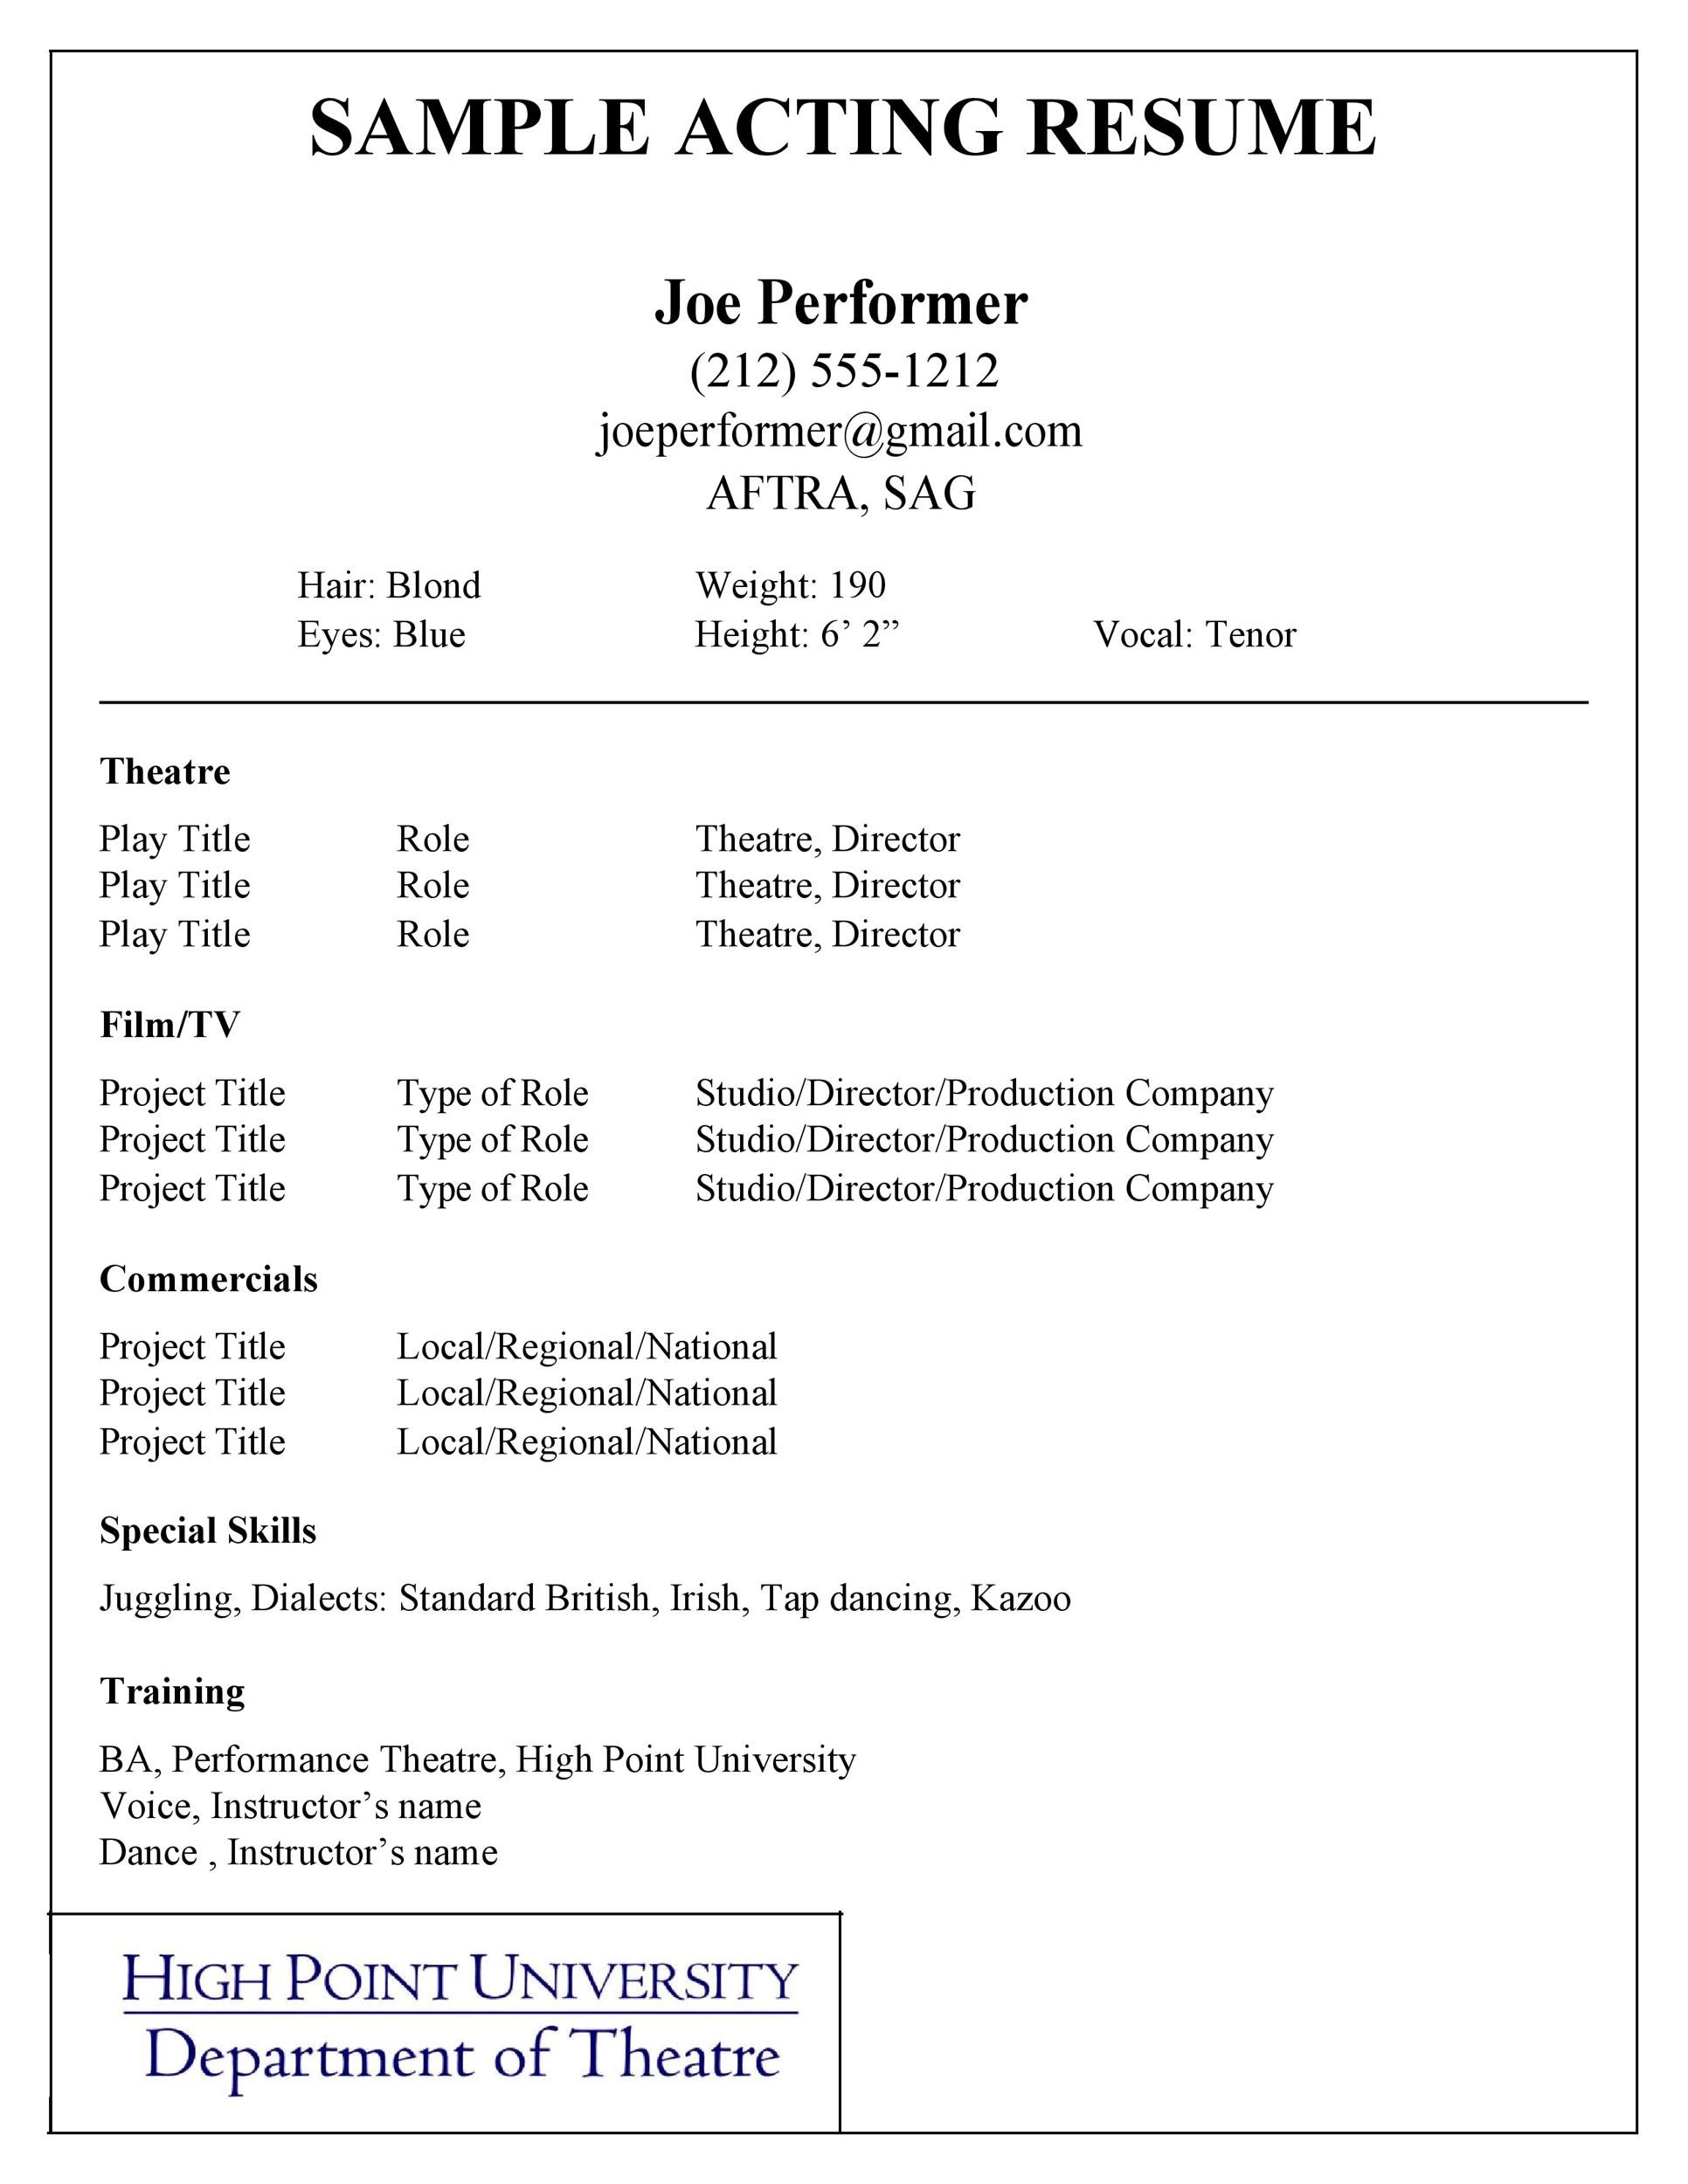 50 Free Acting Resume Templates Word Google Docs ᐅ Templatelab